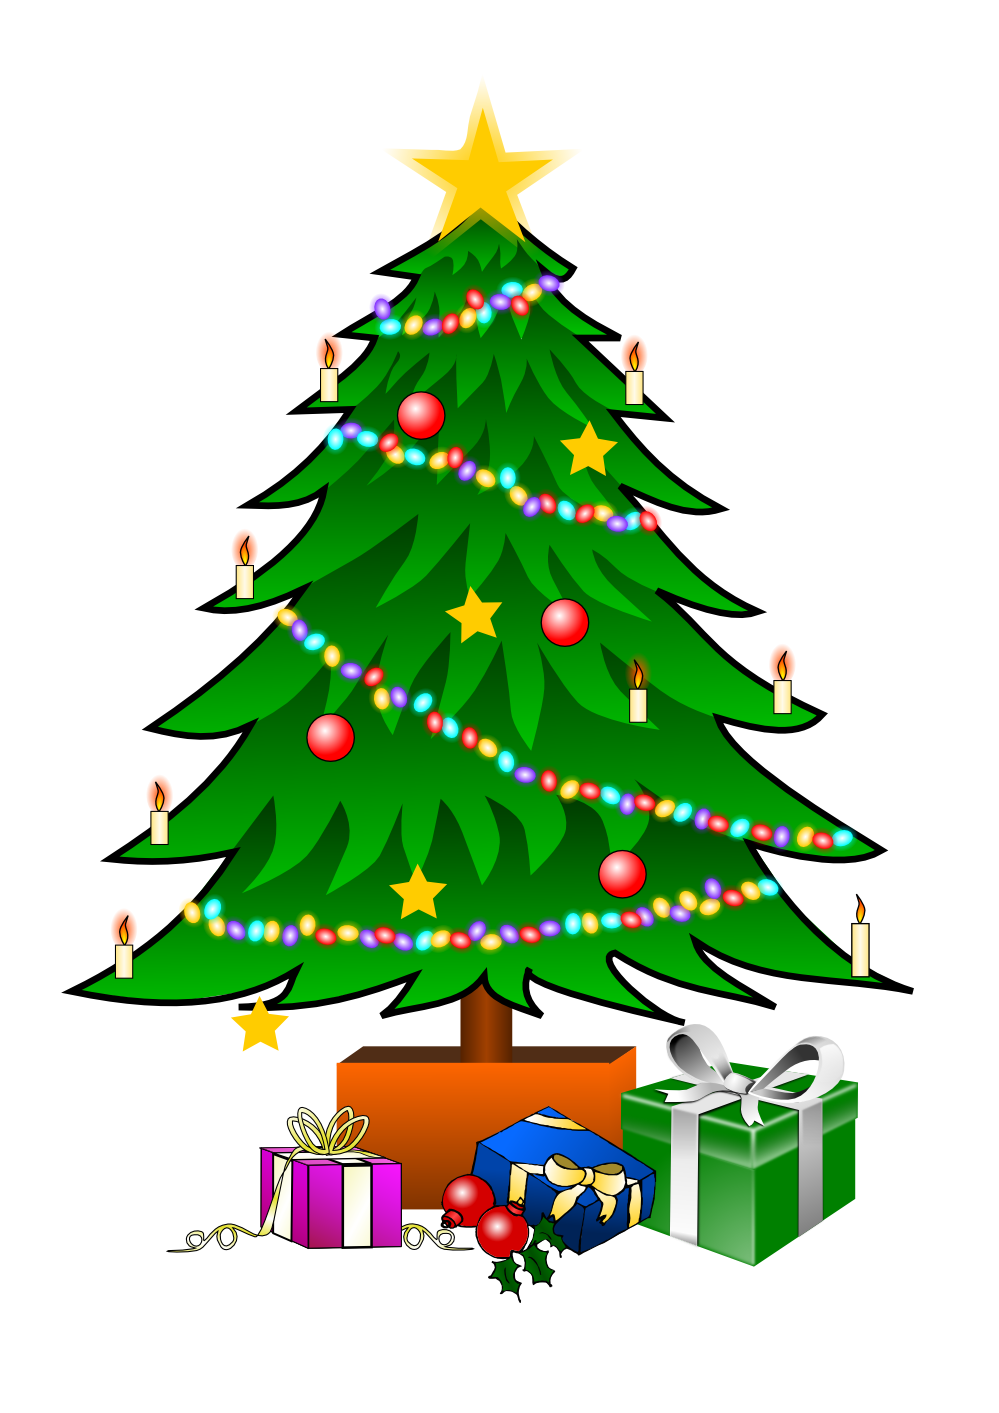 this nice christmas tree with presents clip art can be used for rh pinterest com clip art christmas tree trimming invitations clip art christmas tree trimming invitations